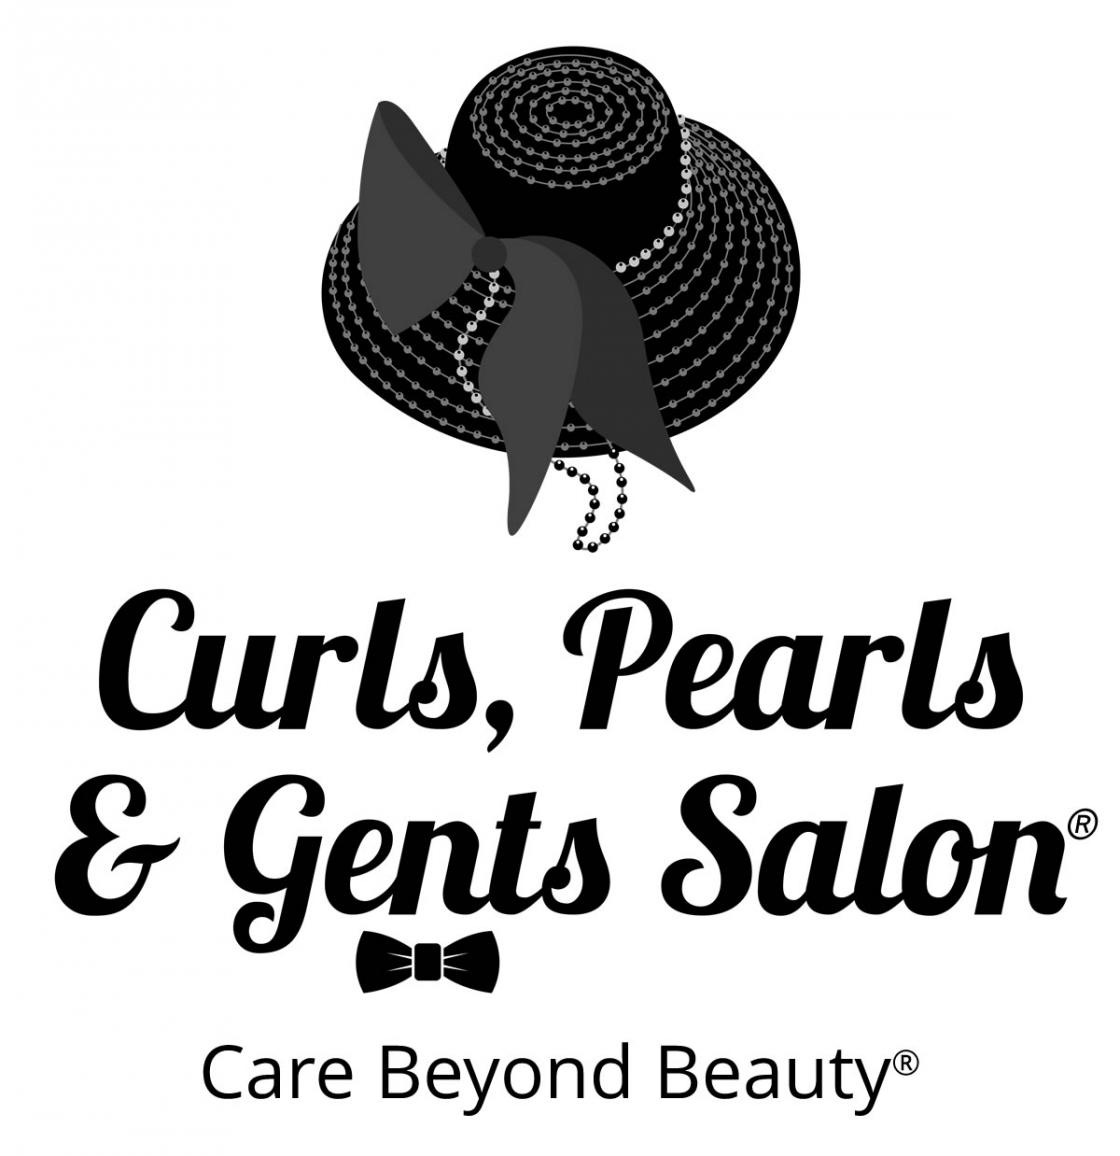 CPG Salon LLC Logo